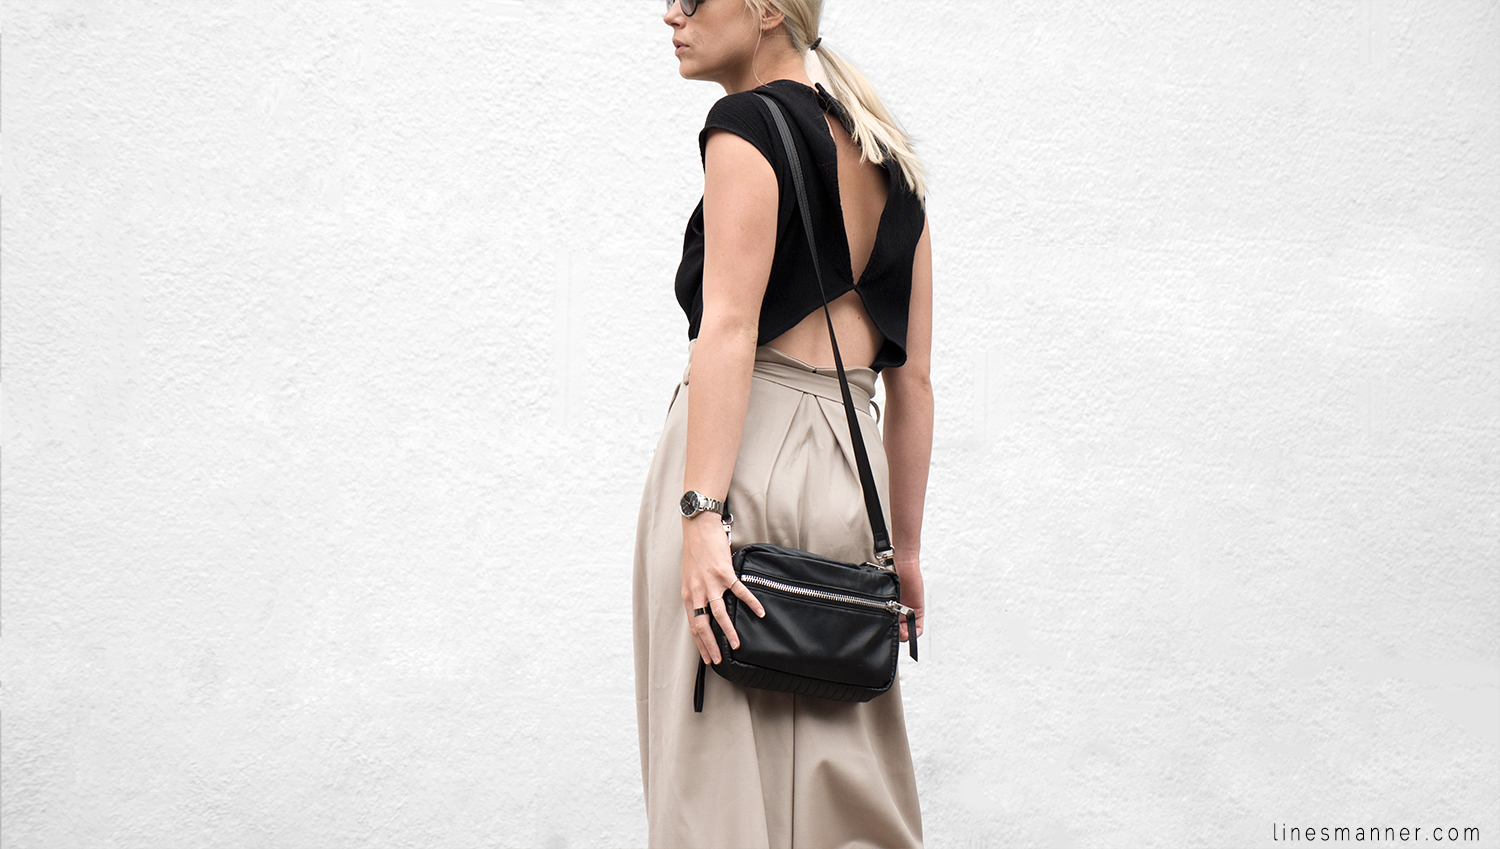 Lines-Manner-Neutrals-Quality-Lora_Gene-Wide_Leg_Pant-Modern-Sophistication-Tailored-Essentials-Details-Simplicity-Summer_vibes-Volume-Proportion-Flowy-5